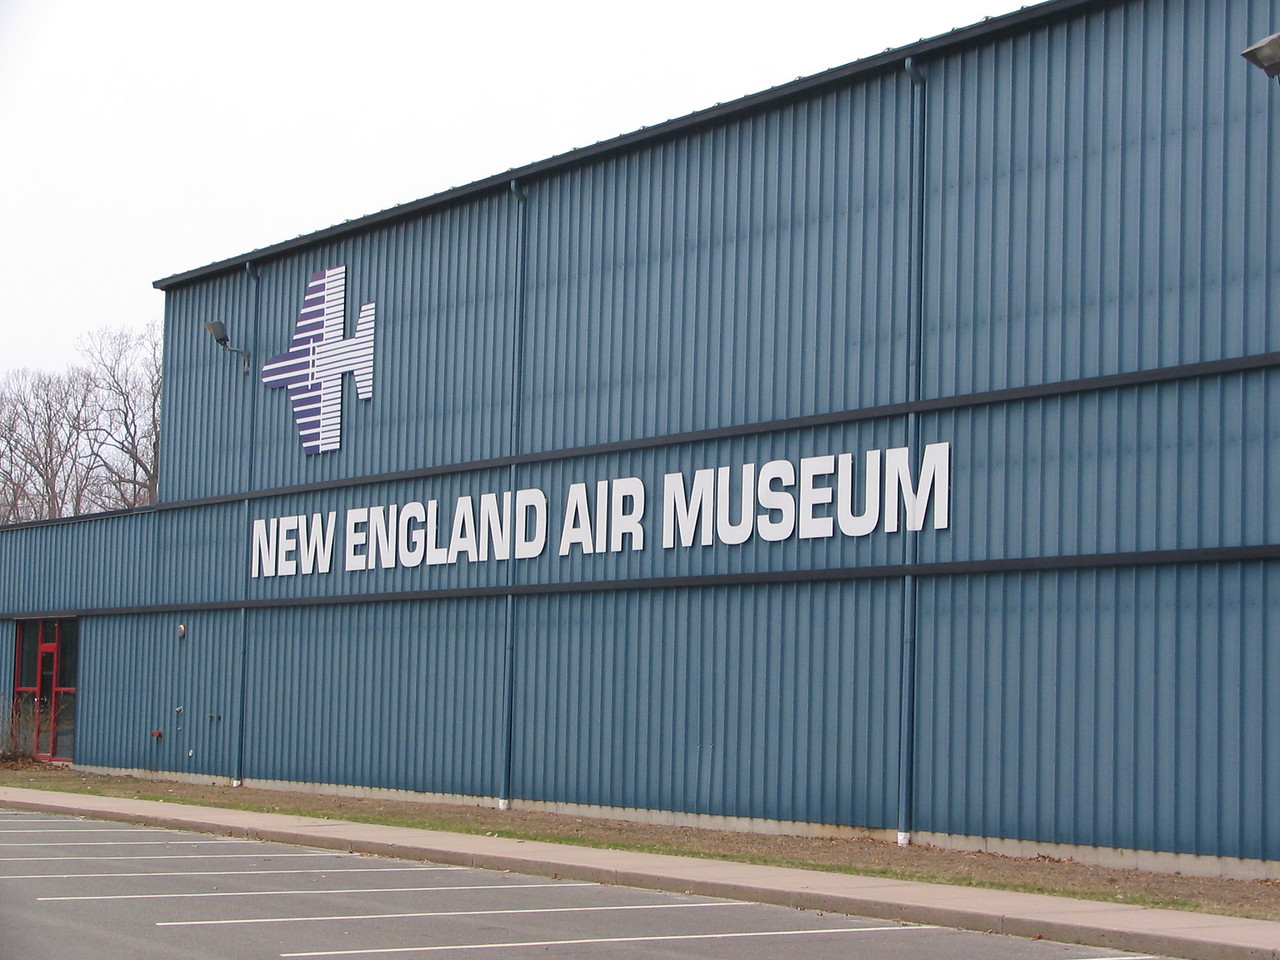 New England Air Museum